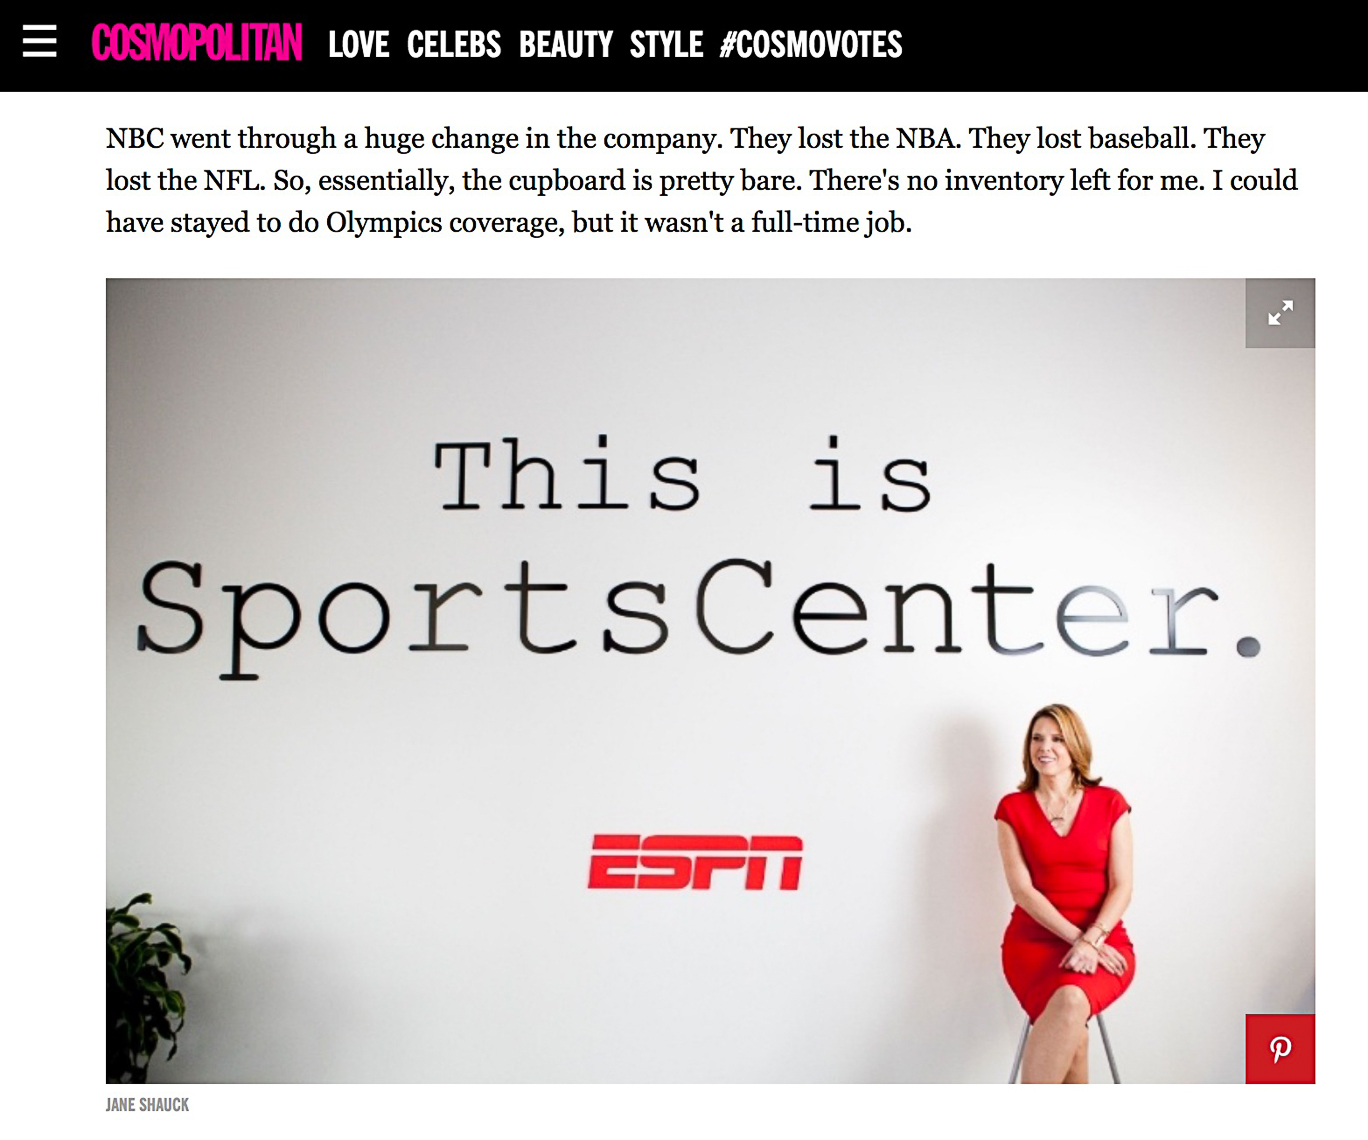 0009_0003_cosmopolitan_hannah_storm_espn_hartford_ct_editorial_celebrity_corporate_sports_advertising_photographer_photojane